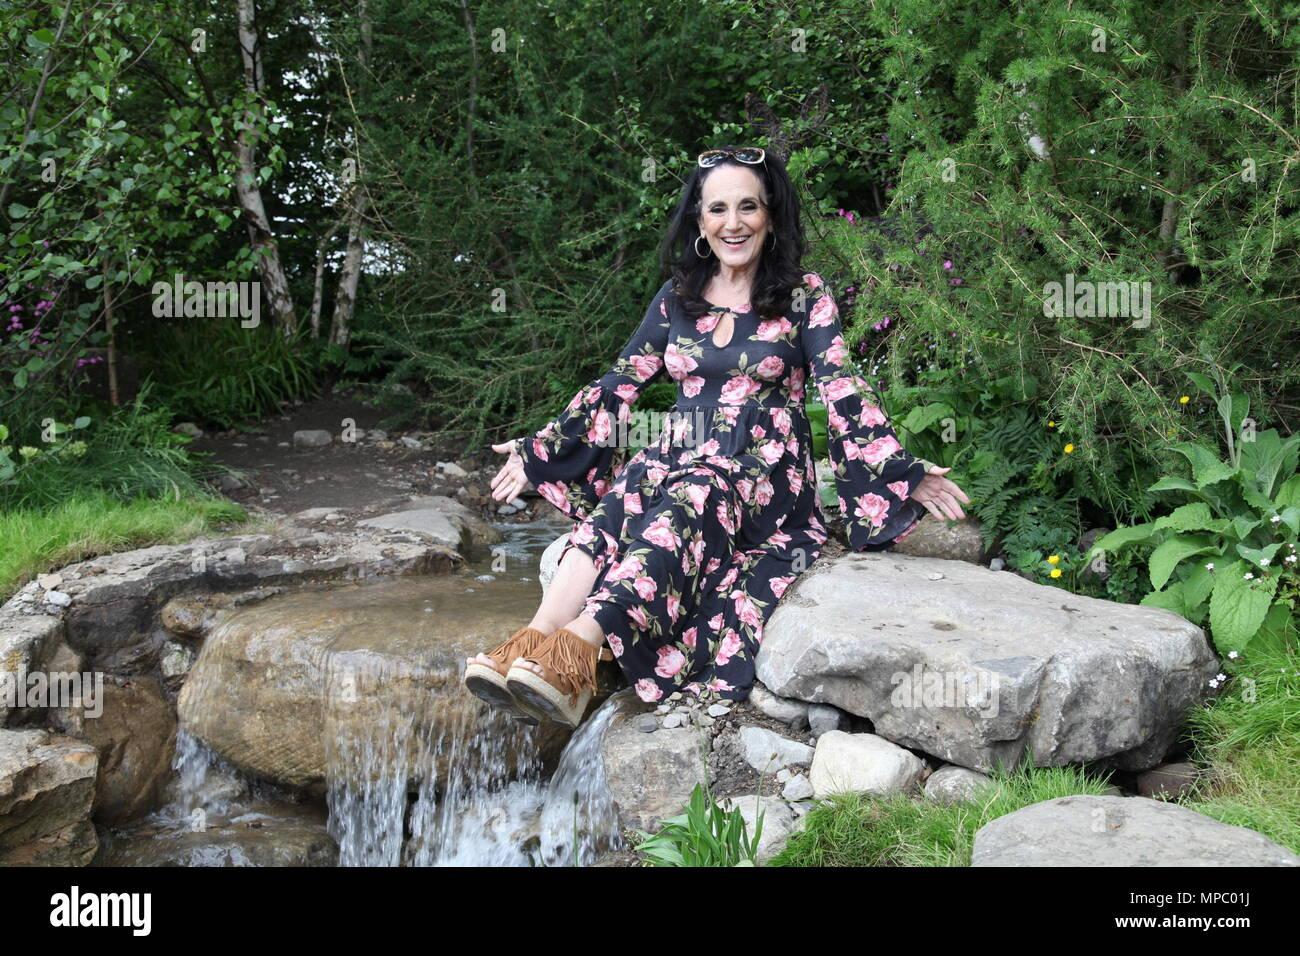 Chelsea, London, UK. 21st May, 2018. Chelsea, London, UK. 21st May 2018. Lesley Joseph taking at break in the Welcome to Yorkshire garden at Chelsea Flower Show 2018, designed by Mark Gregory for Landformconsultants.co.uk Credit: Jenny Lilly/Alamy Live News - Stock Image